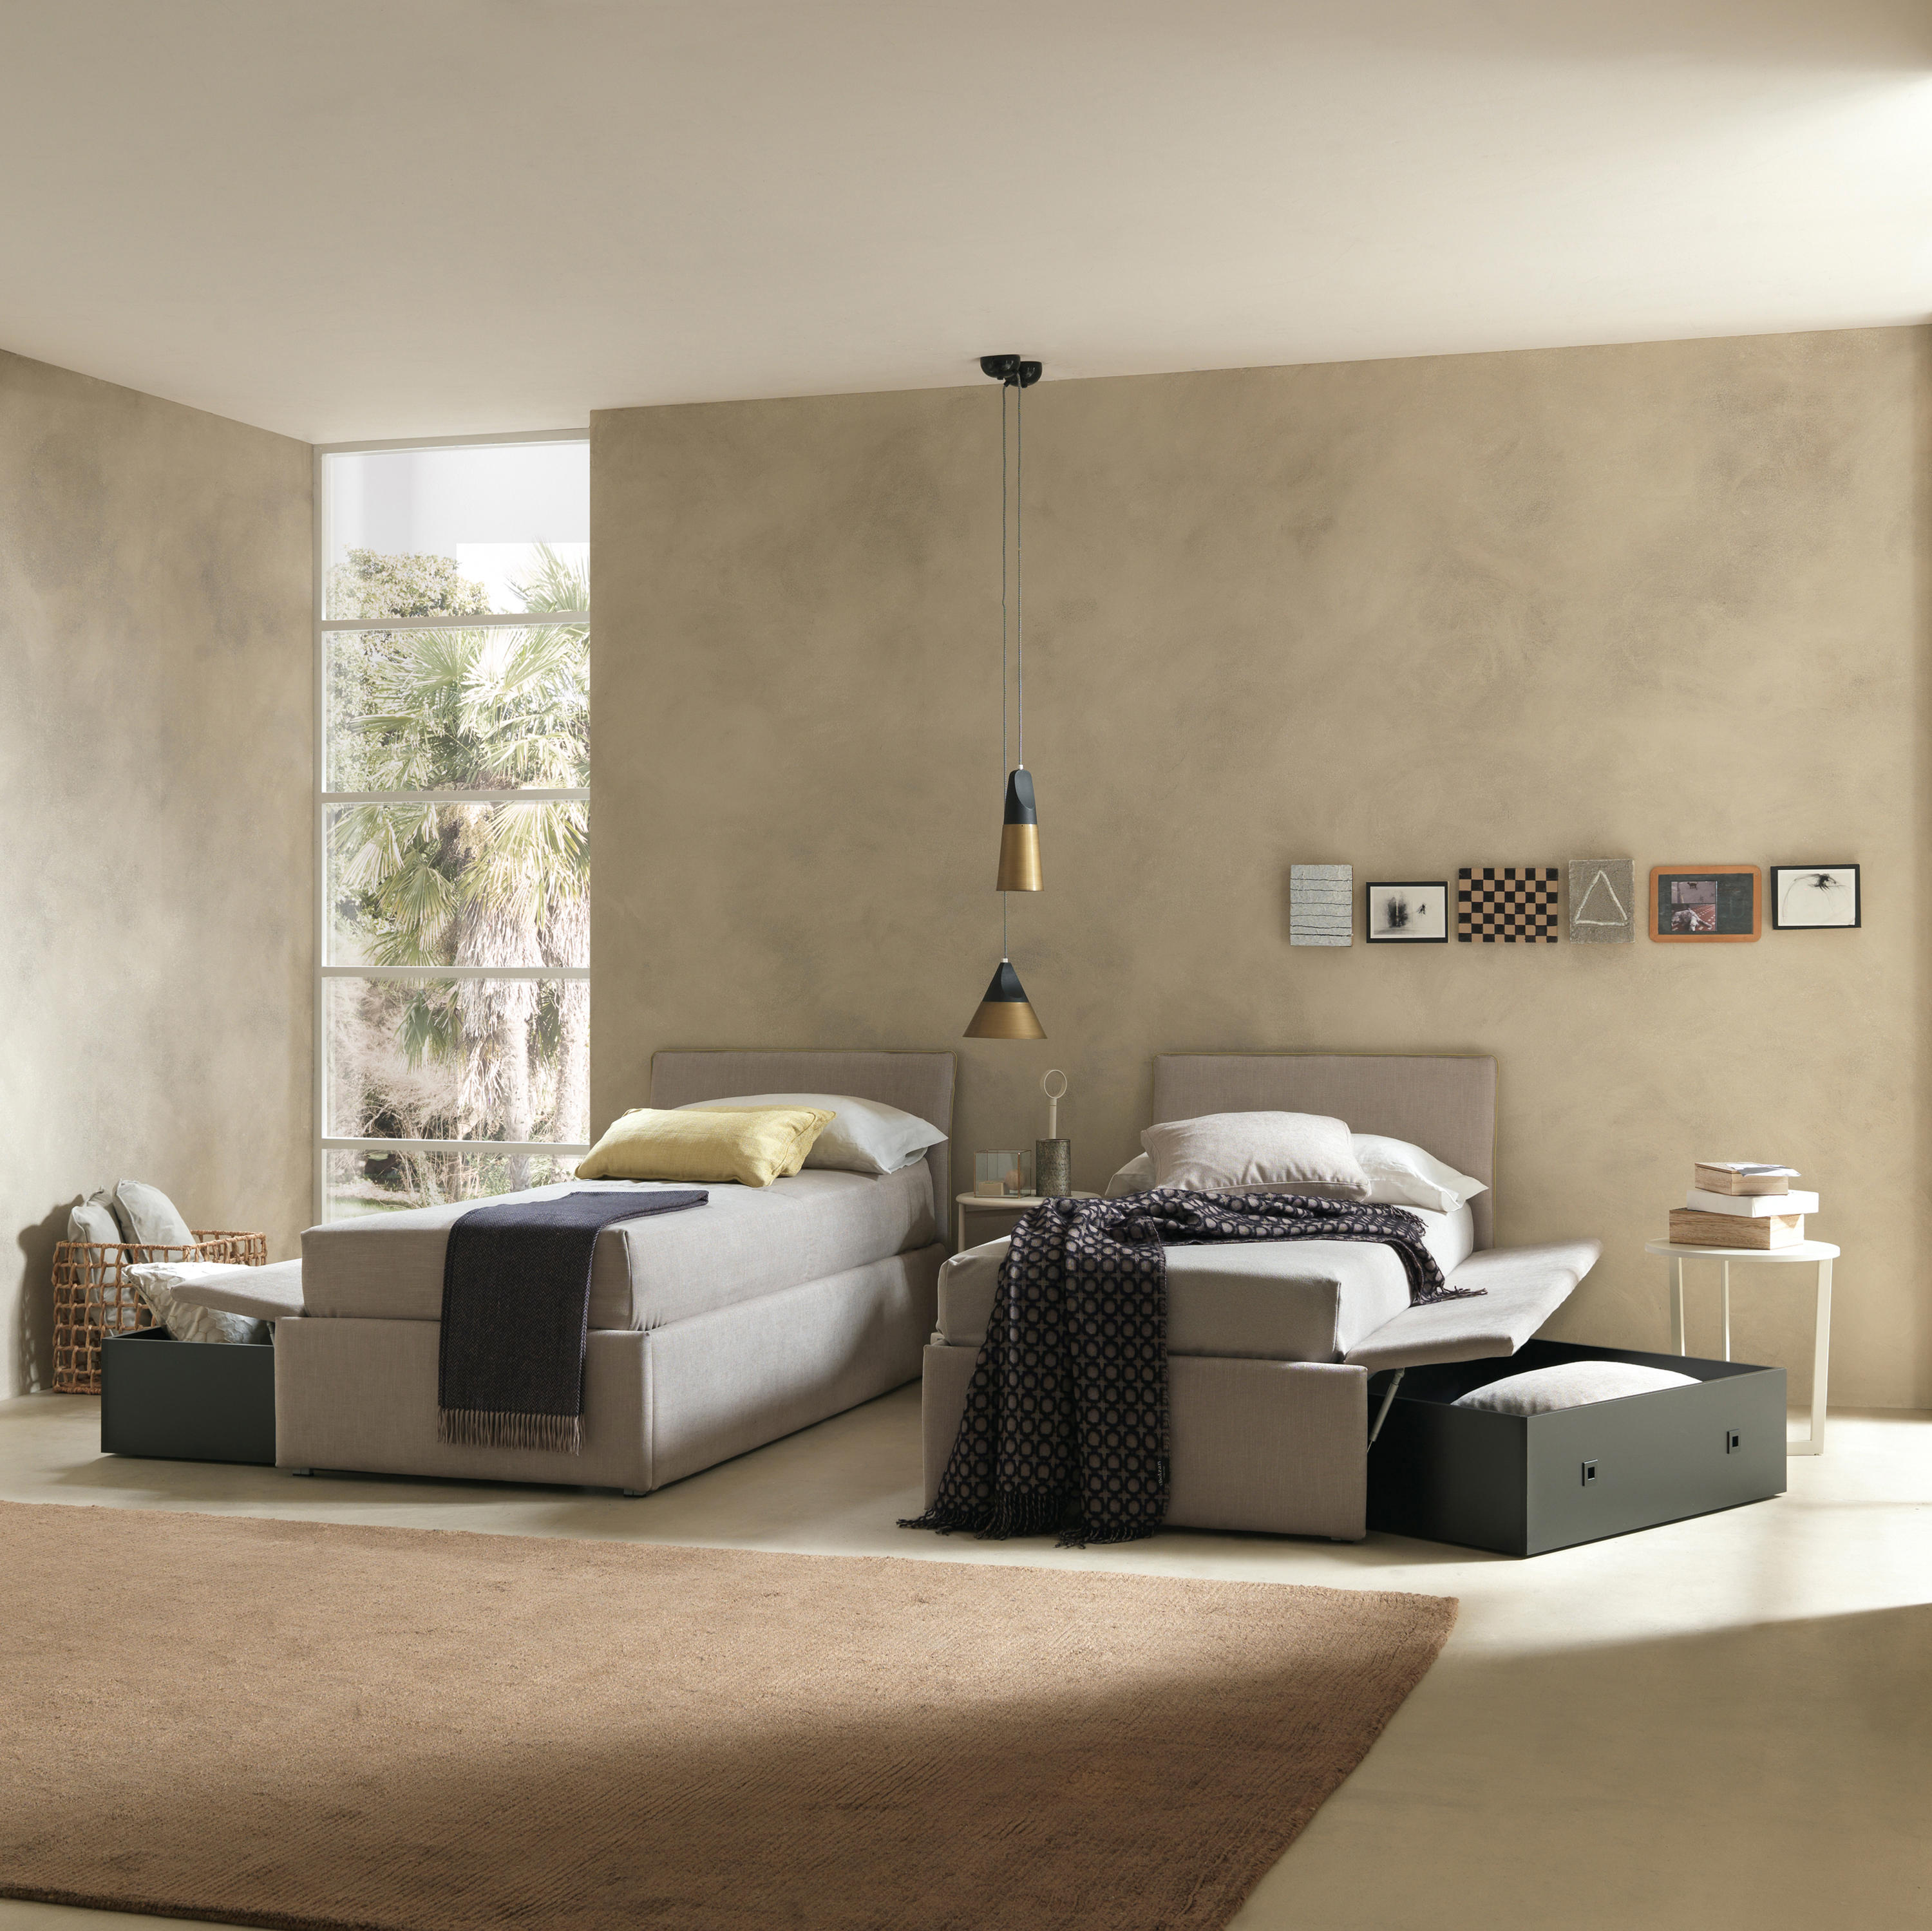 Fly 22 Beds From Bolzan Letti Architonic